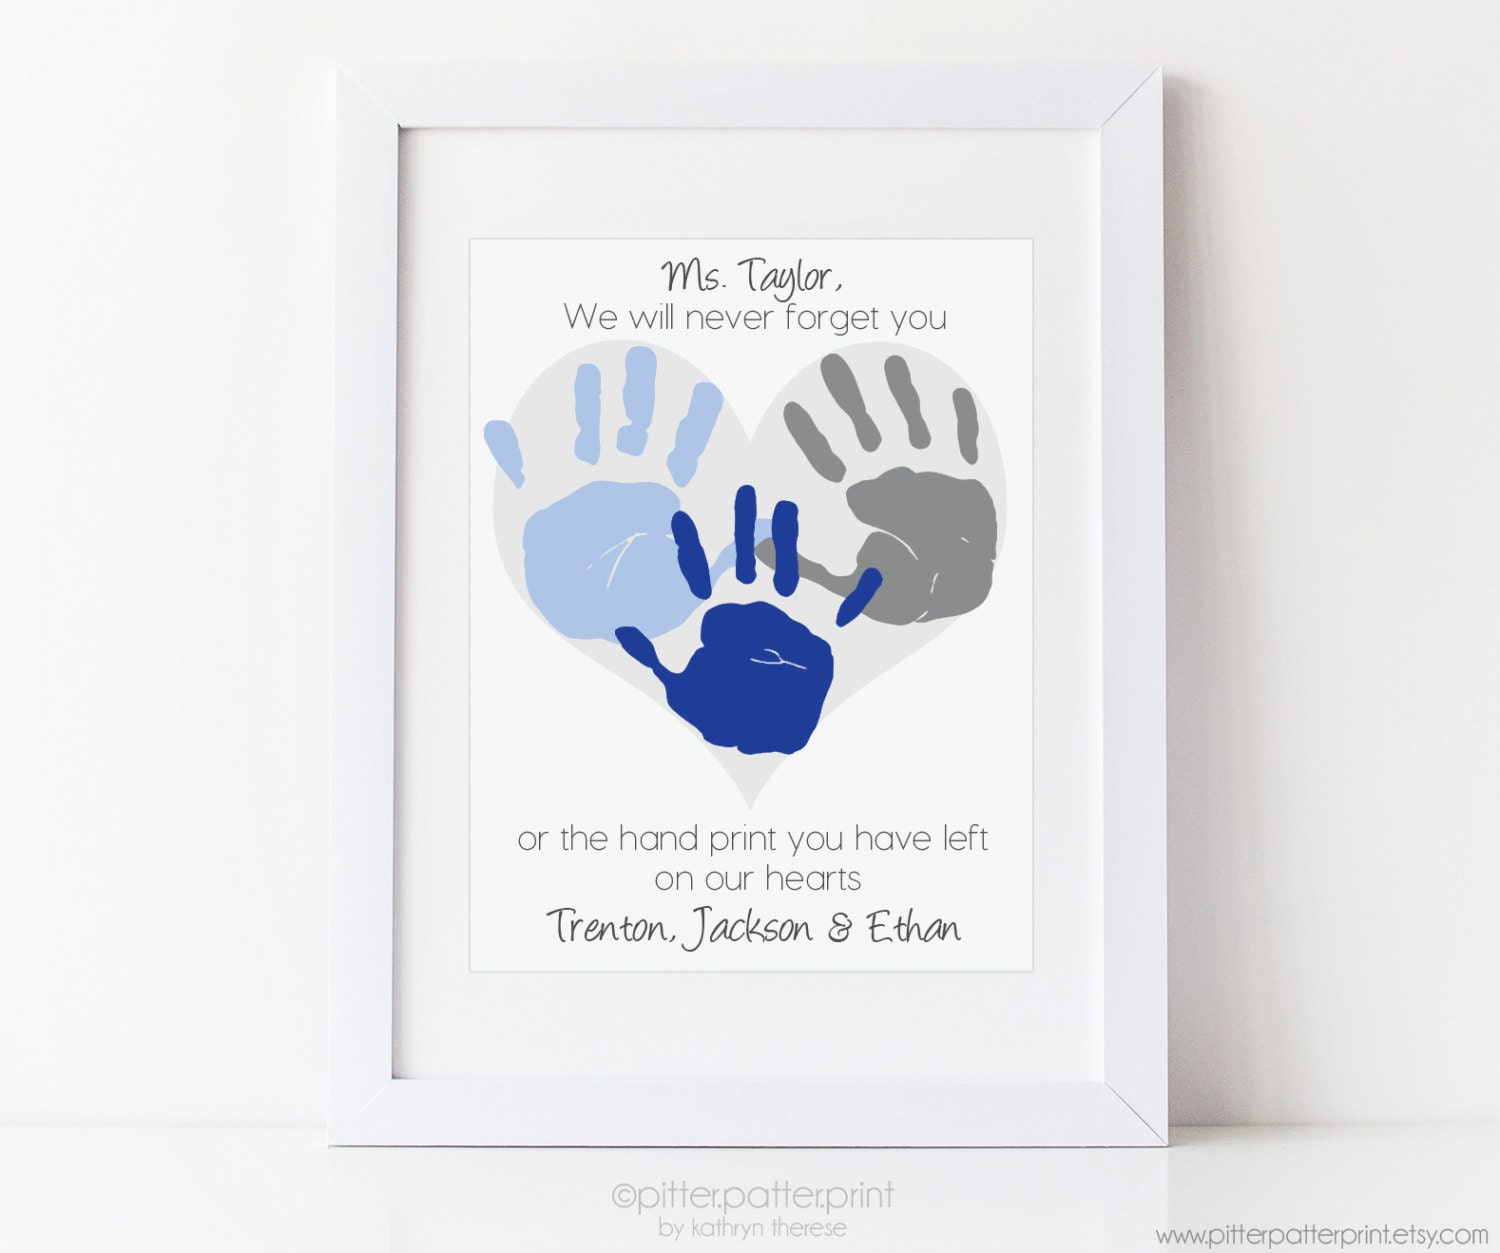 babysitter daycare gift nanny gift teacher gift babysitter gift personalized handprint heart art your child s hand prints 8x10 or 11x14 unframed